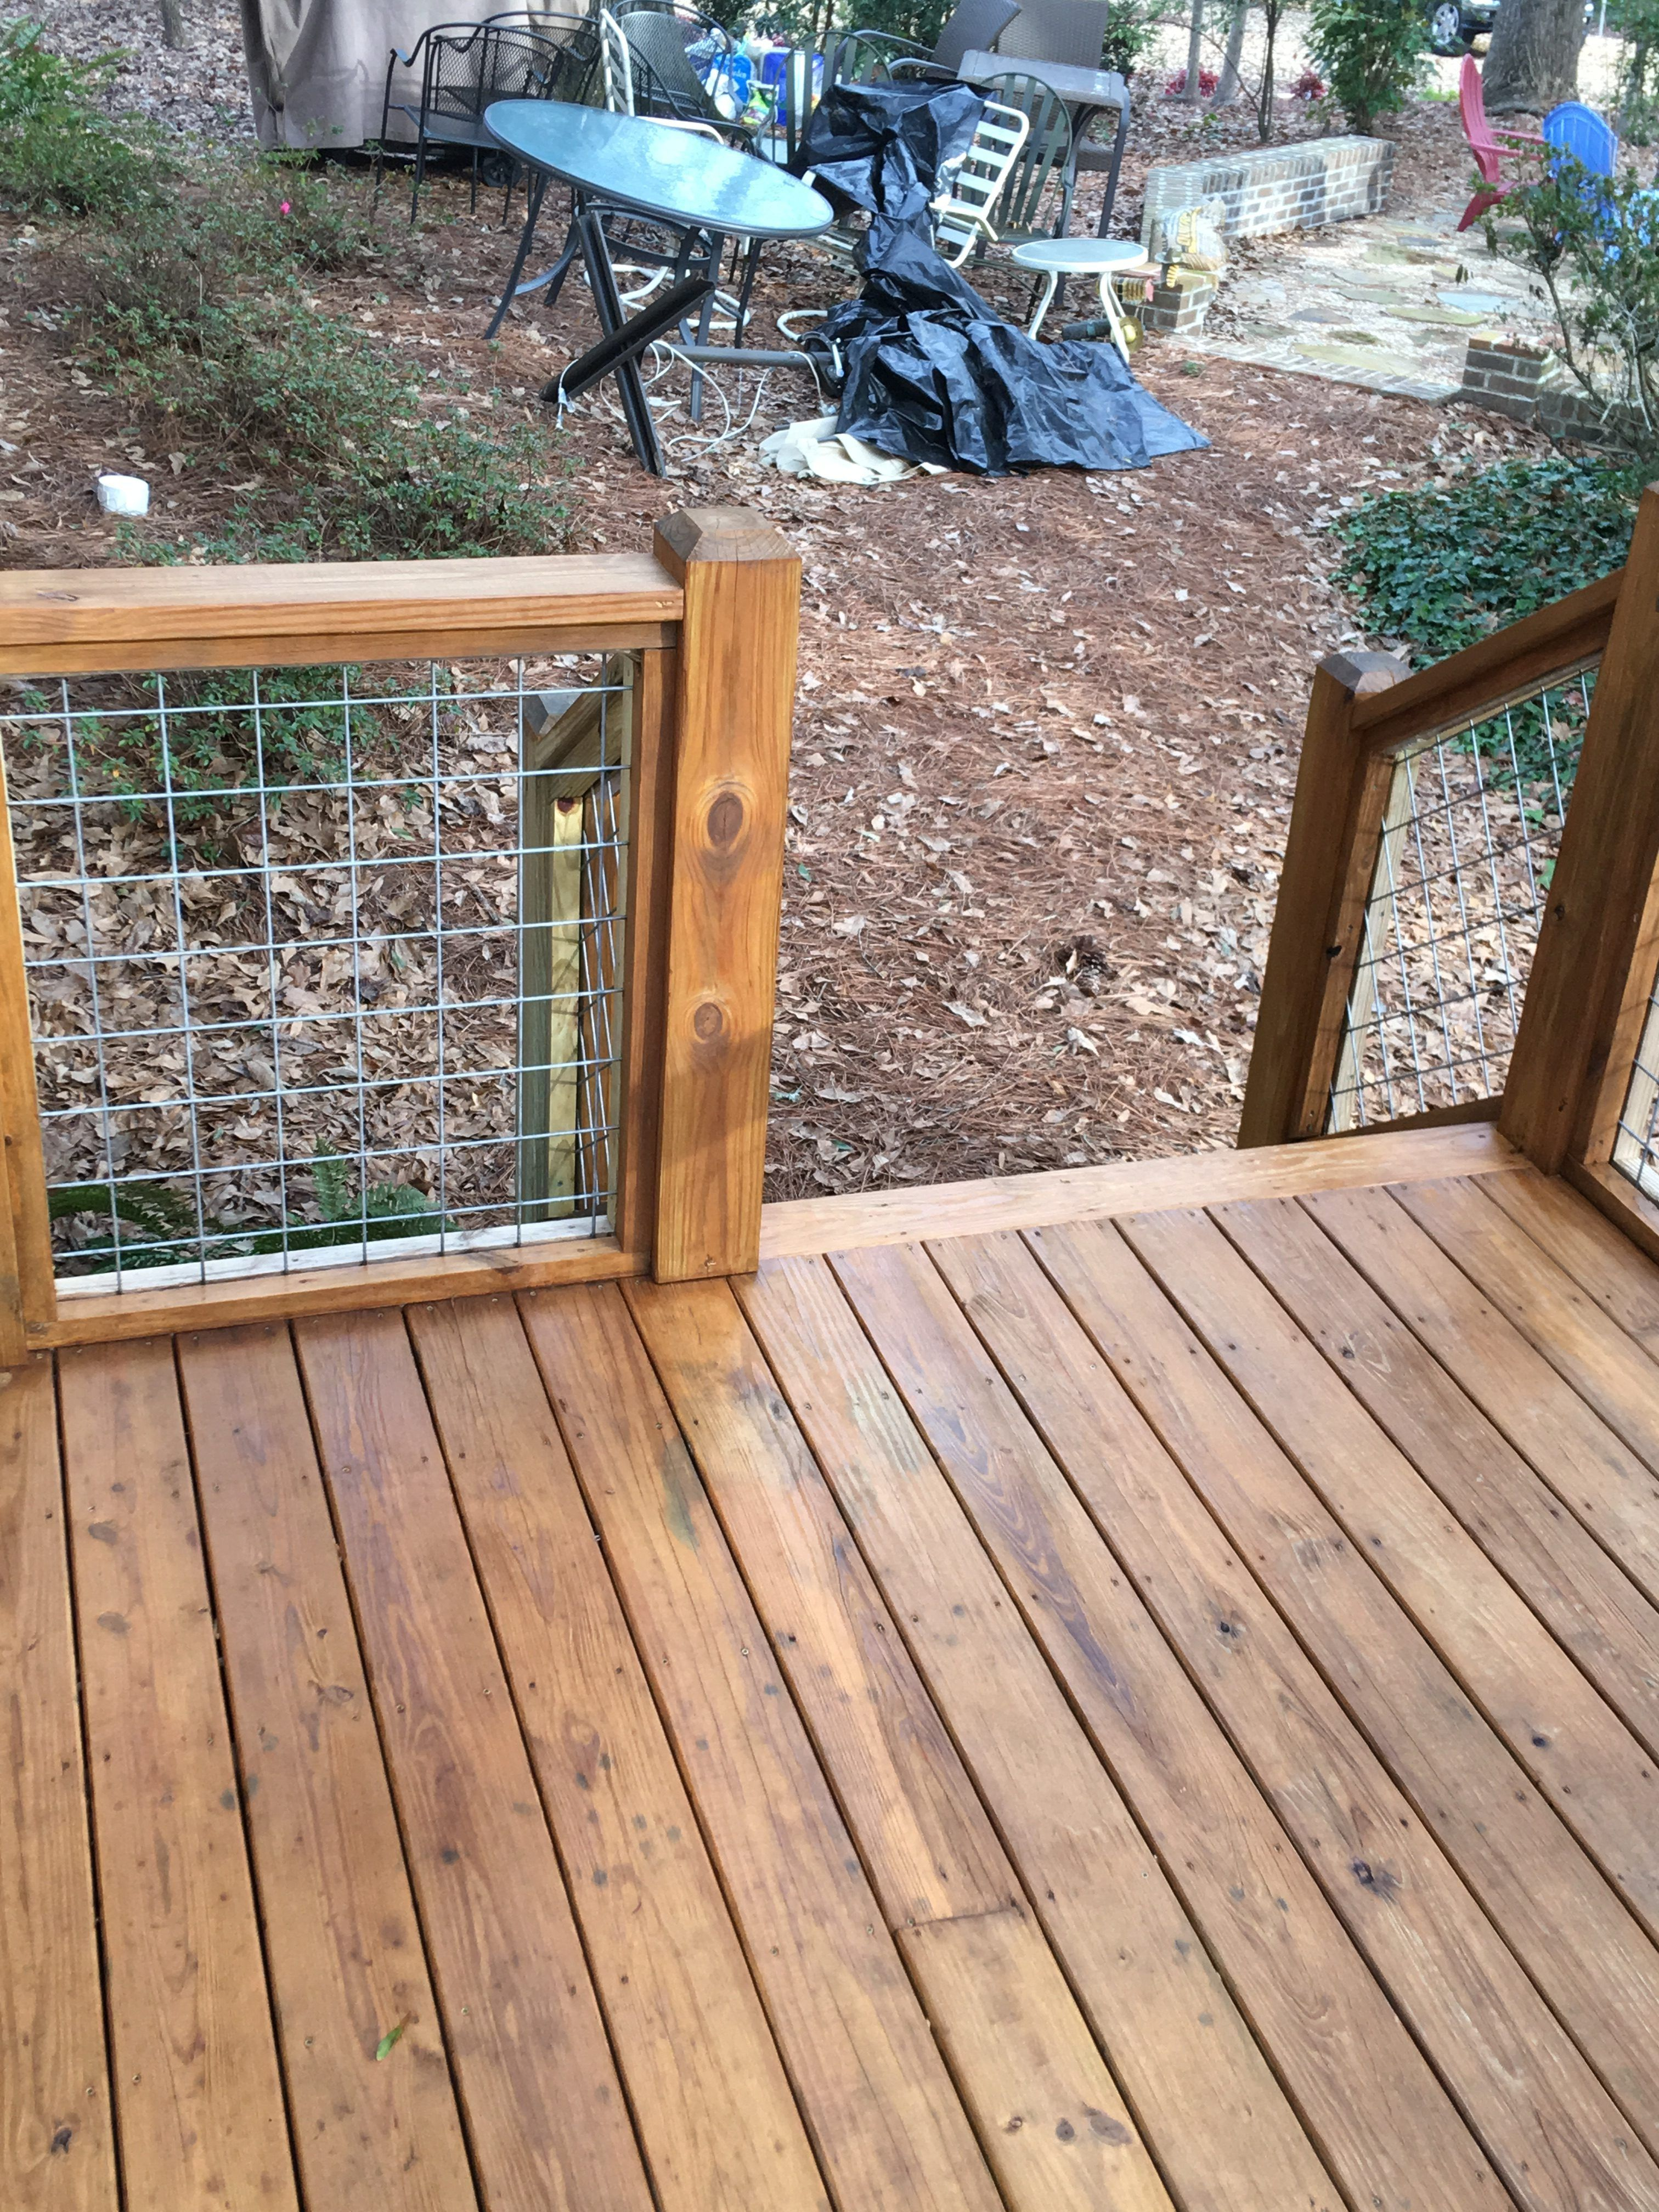 Restore A Deck Wood Stain Review Wood Deck Stain Staining Wood